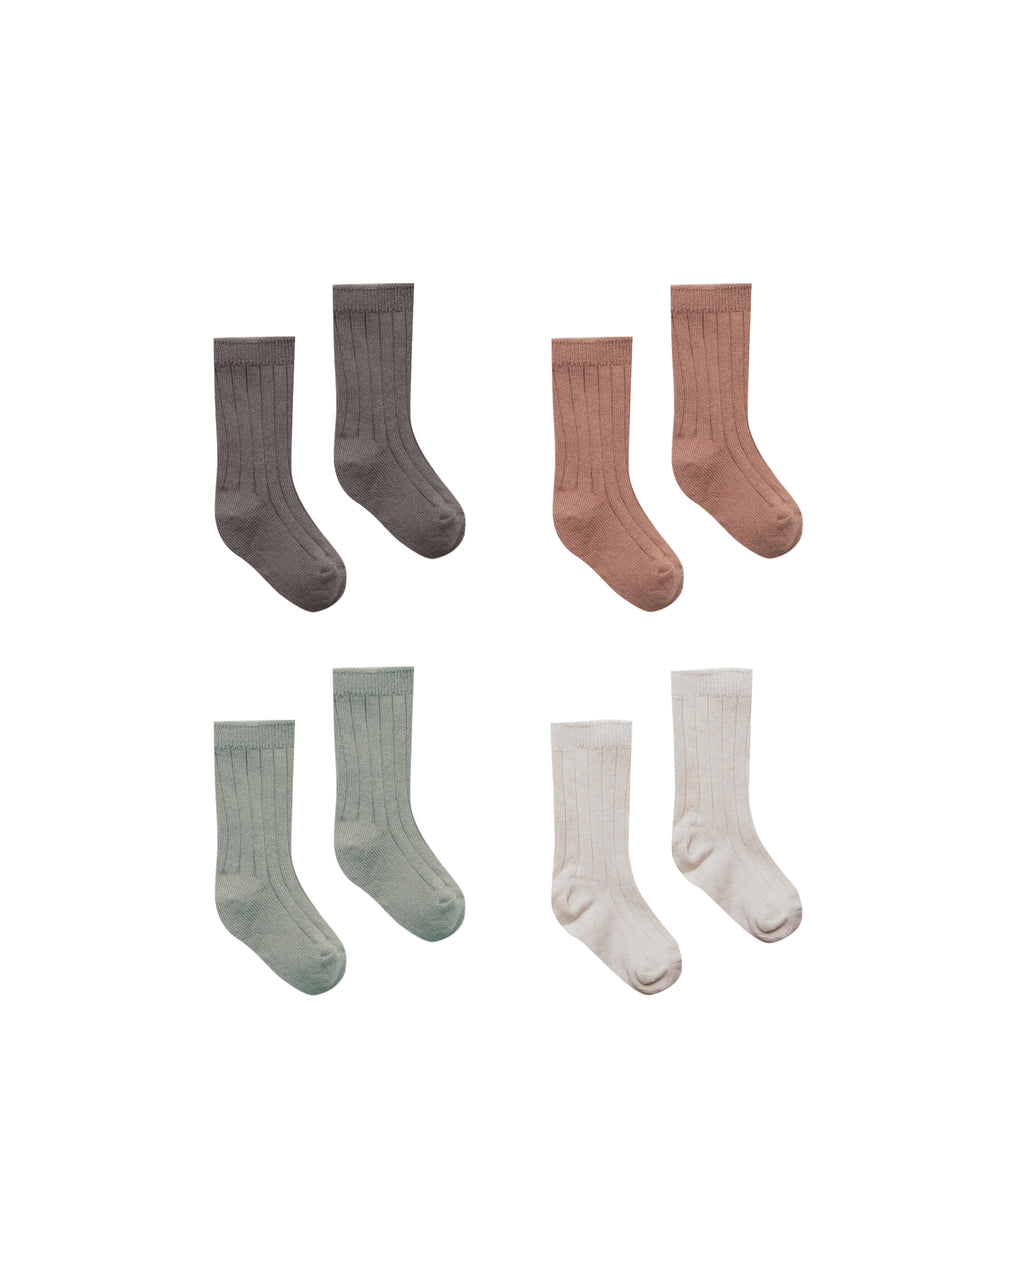 Quincy Mae Baby Sock 4 Pack - Coal, Clay, Eucalyptus, Stone